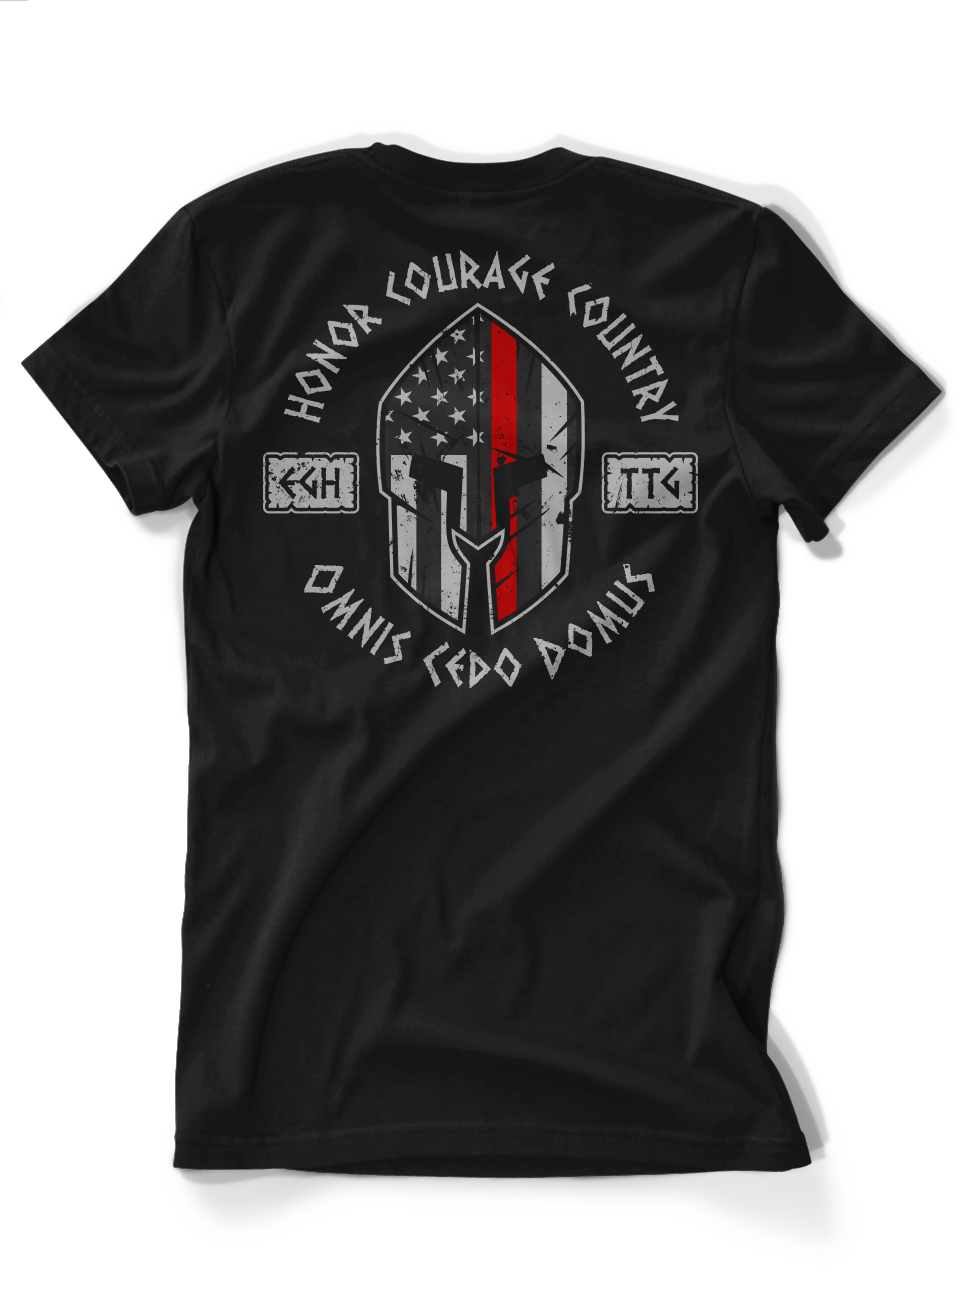 Everyone Goes Home Thin Red Line Tee